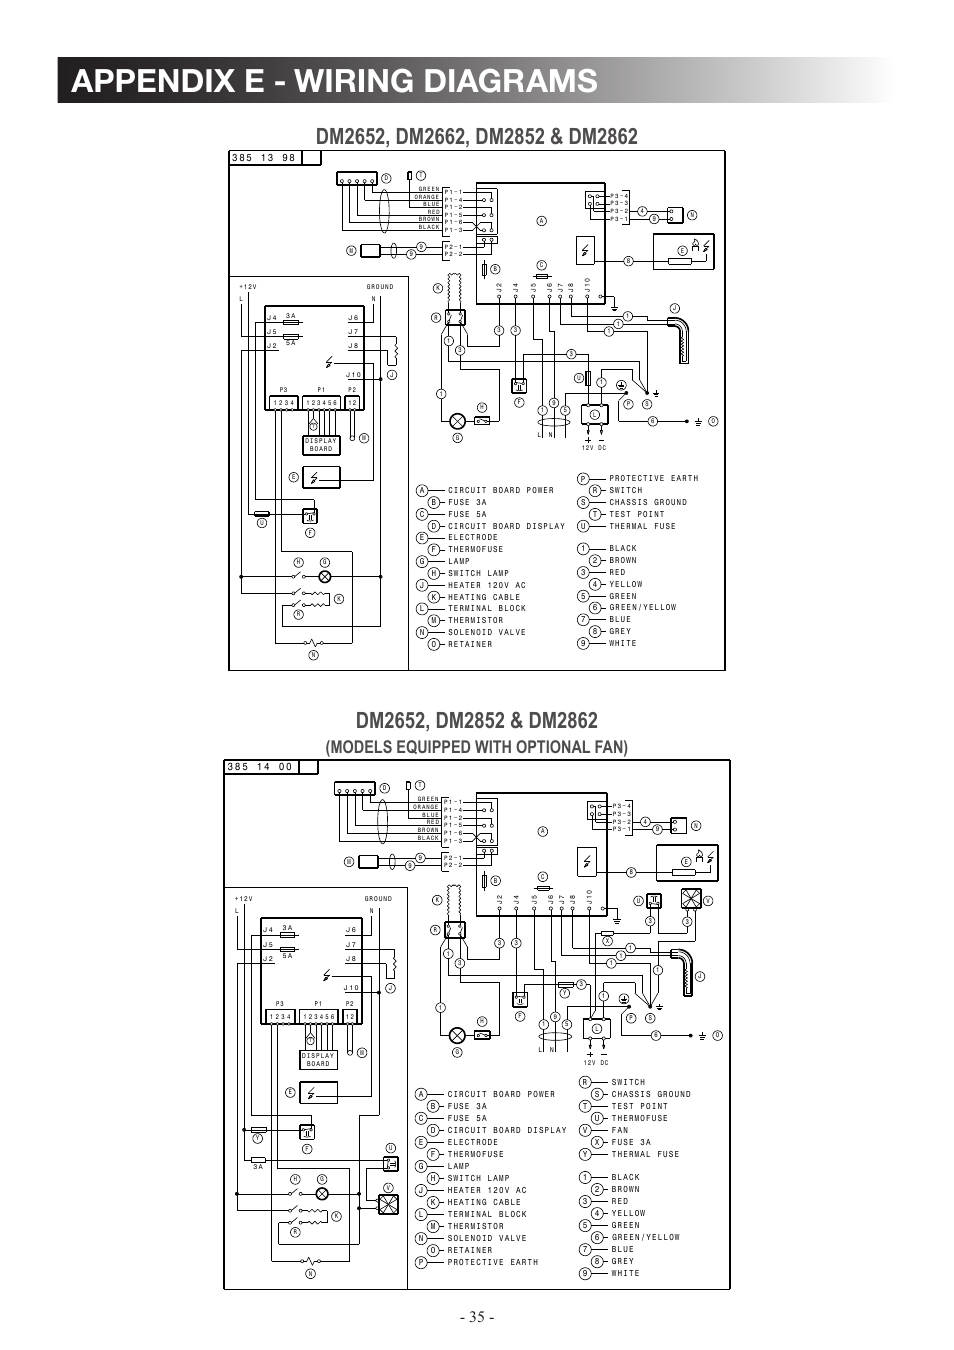 Appendix E Wiring Diagrams Models Equipped With Optional Fan Thermostate Switch And Solenoid Diagram Dometic Dm2862 User Manual Page 35 40